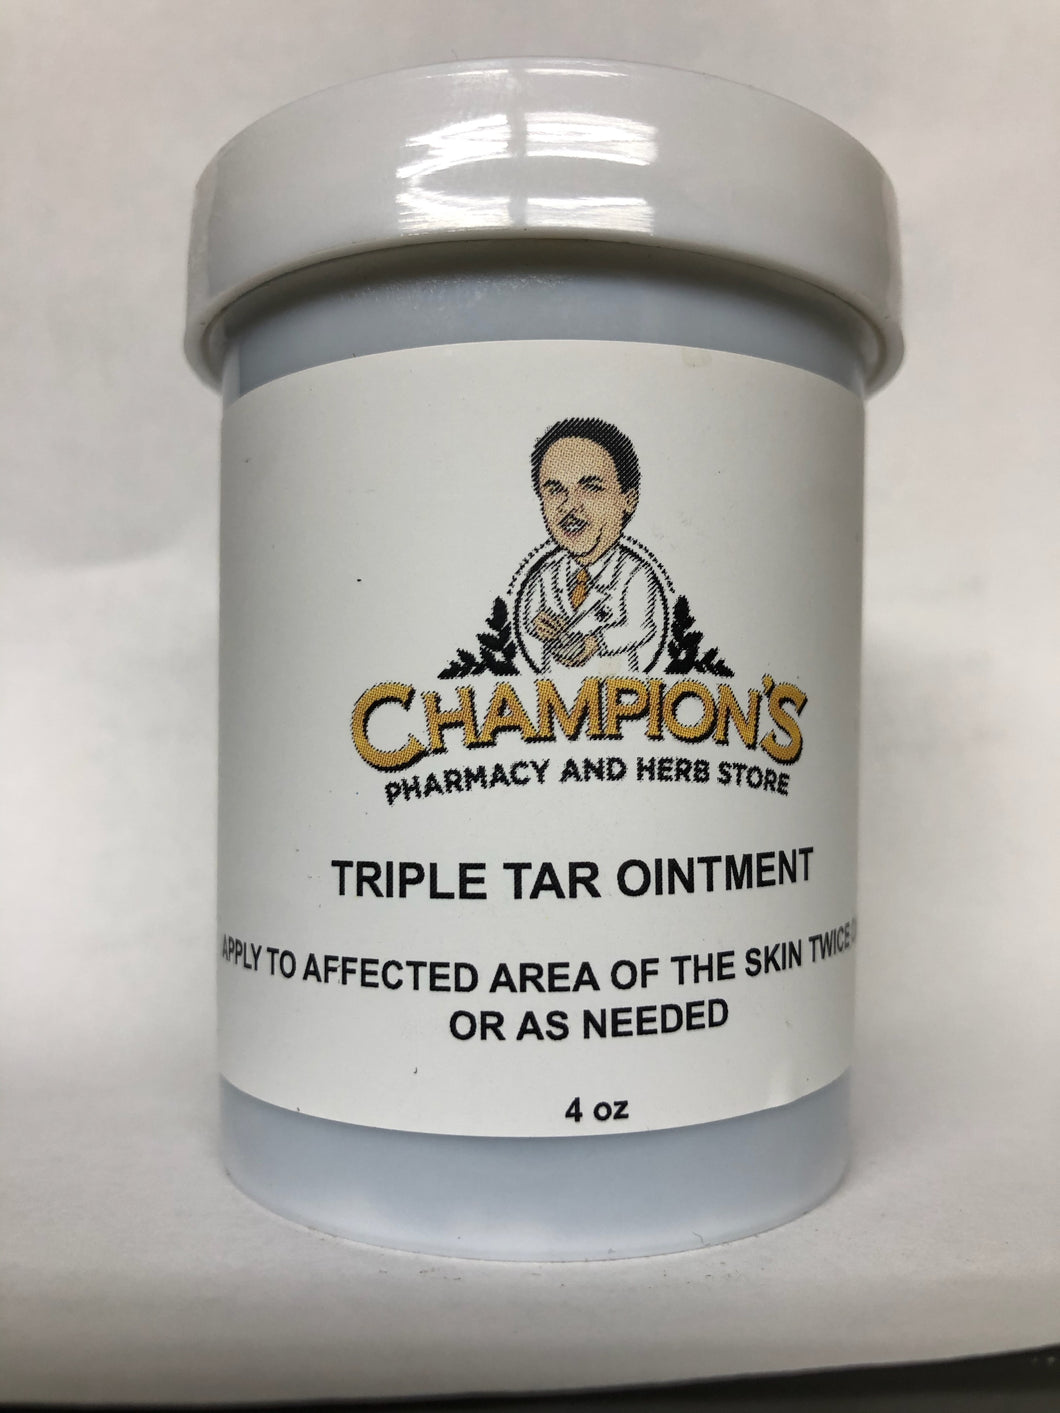 Champion's Triple Tar Ointment